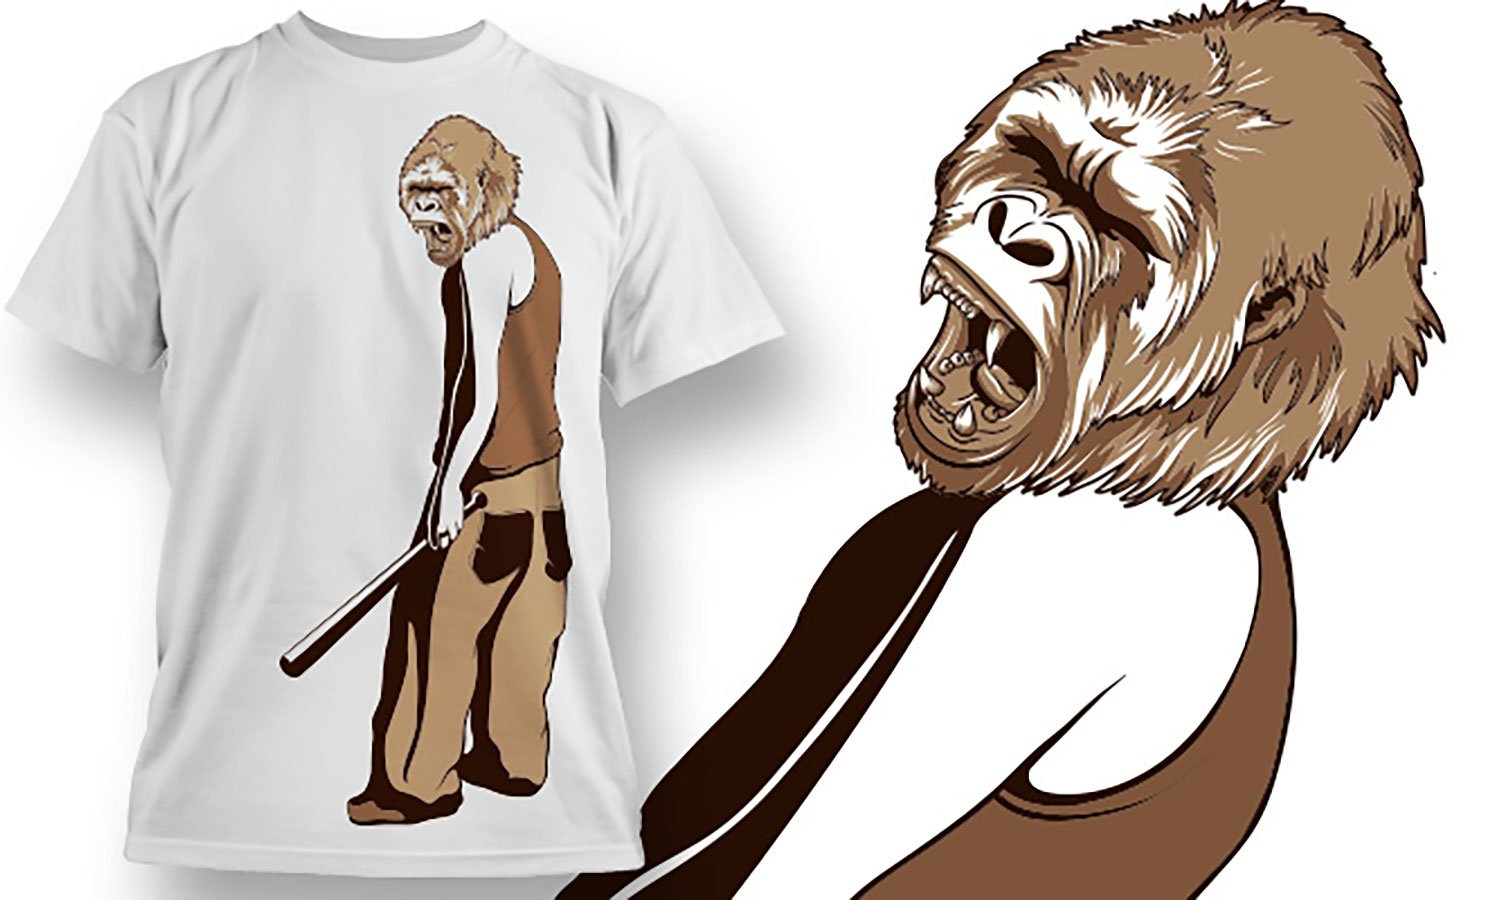 Monkey People - Printed T-Shirt for Men, Women and Kids - TS393